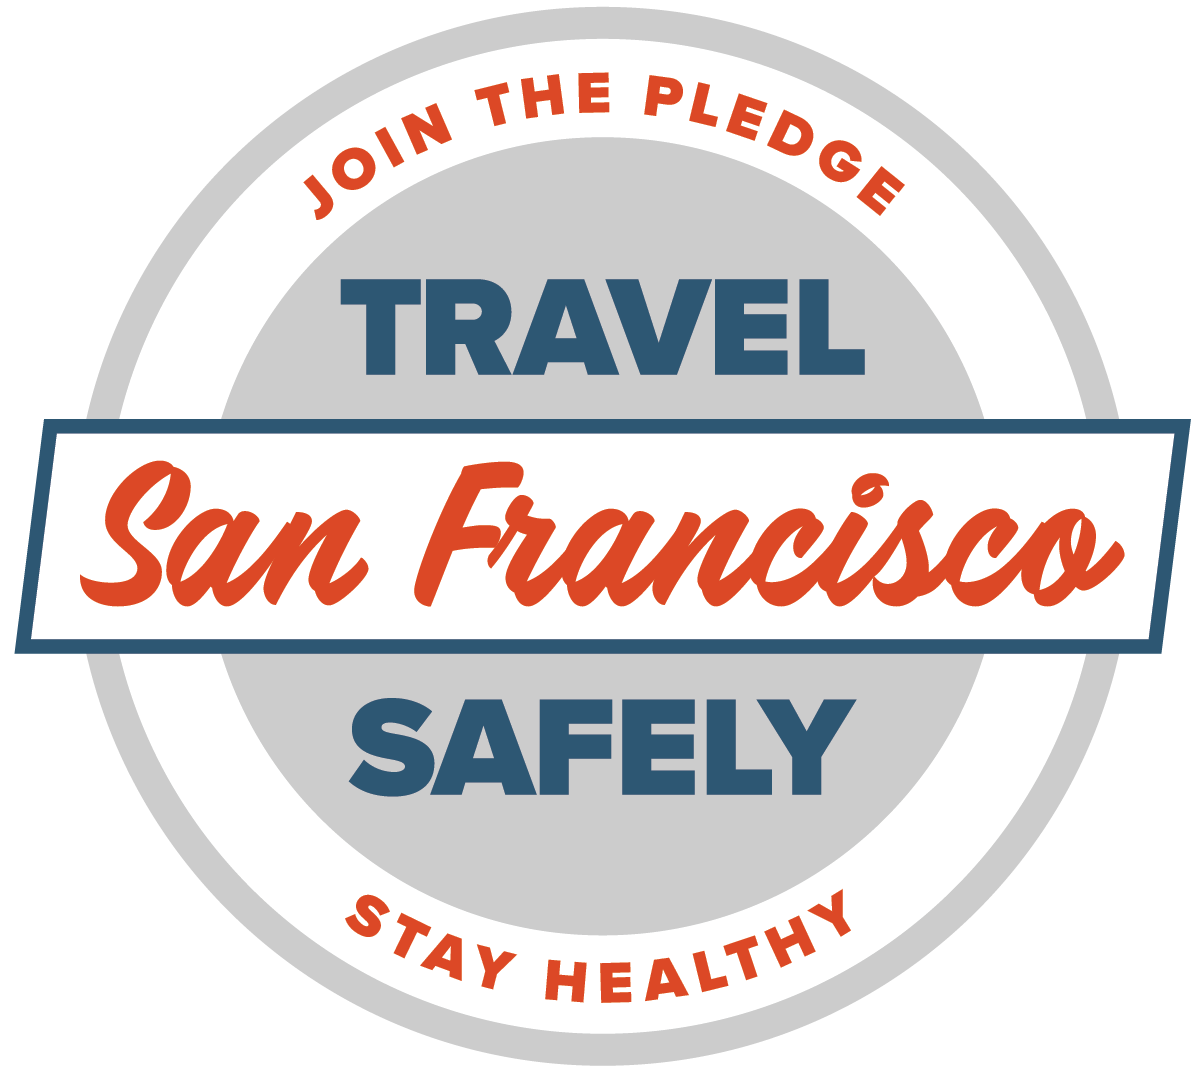 sf-travel-safely-badge_1.png